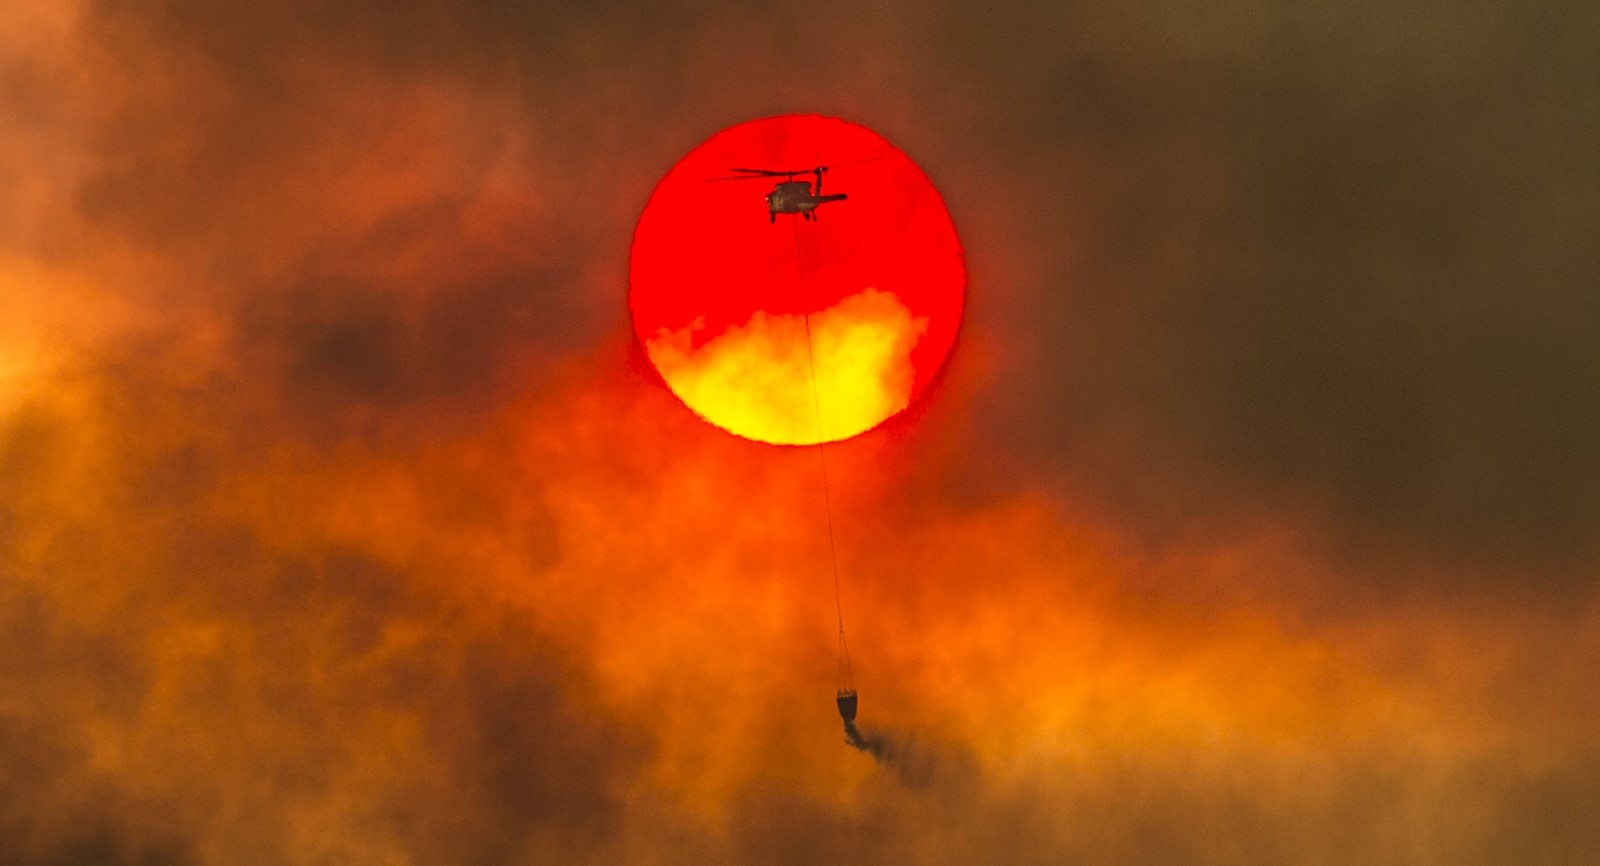 A firefighting helicopter drops water near Redding, California, where the Carr fire erupted last week amid triple-digit temperatures. — Photograph: Hector Amezcua/Sacramento Bee.